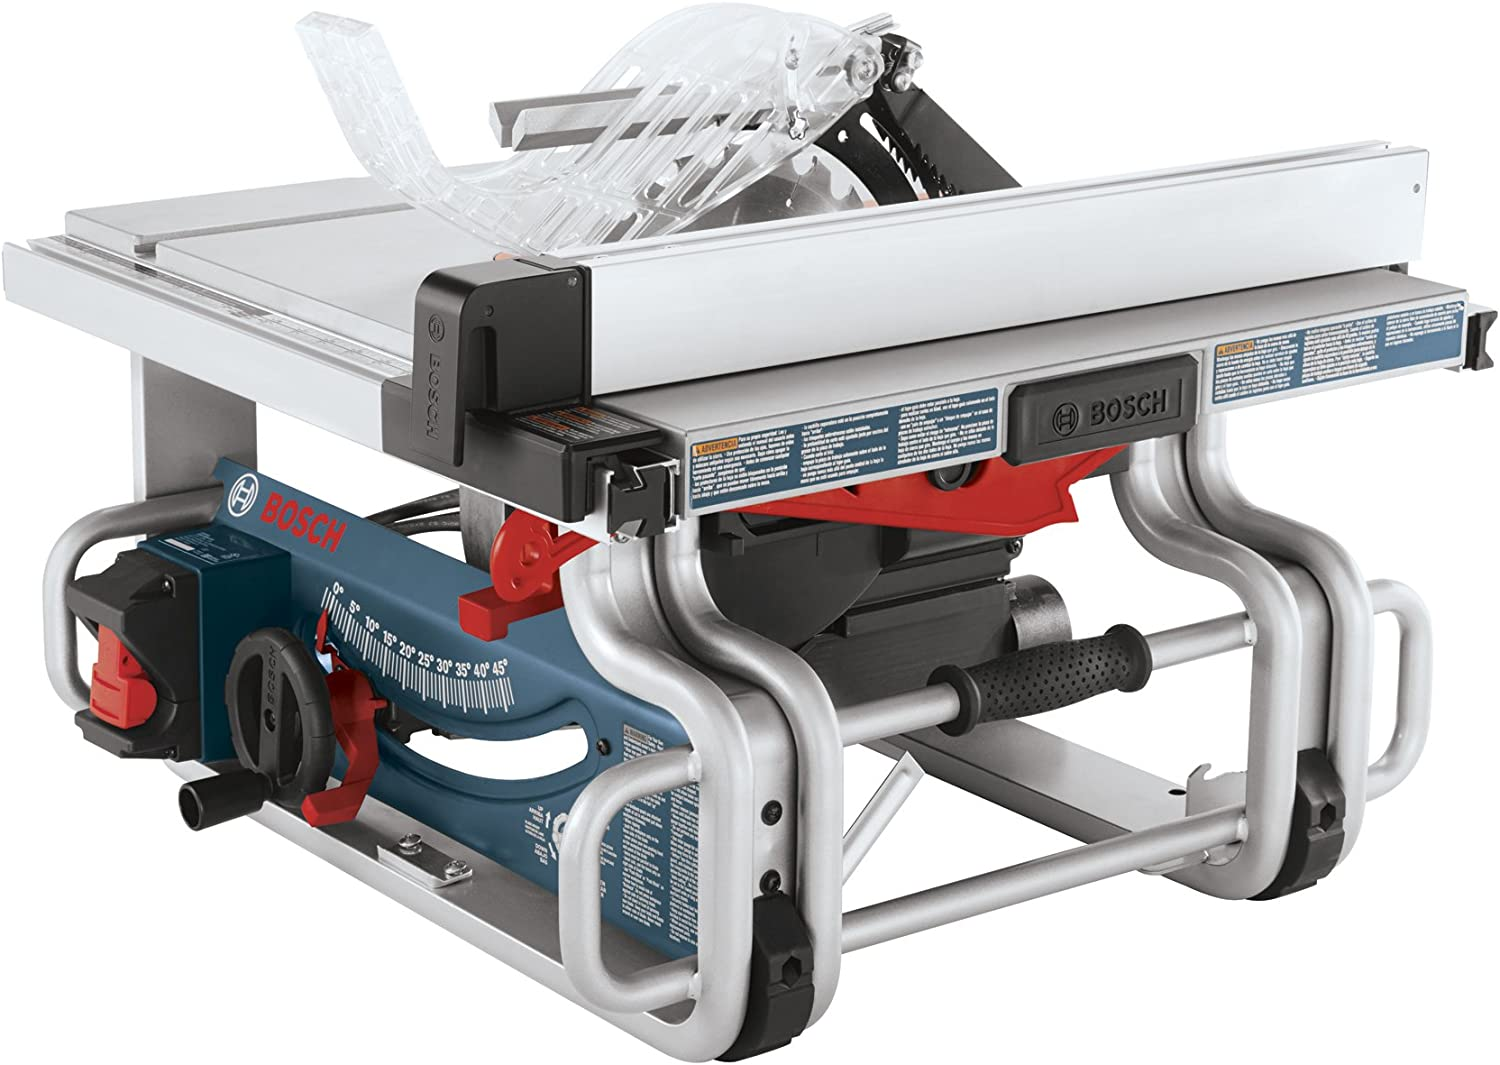 Bosch GTS1031 Table Saws product image 3